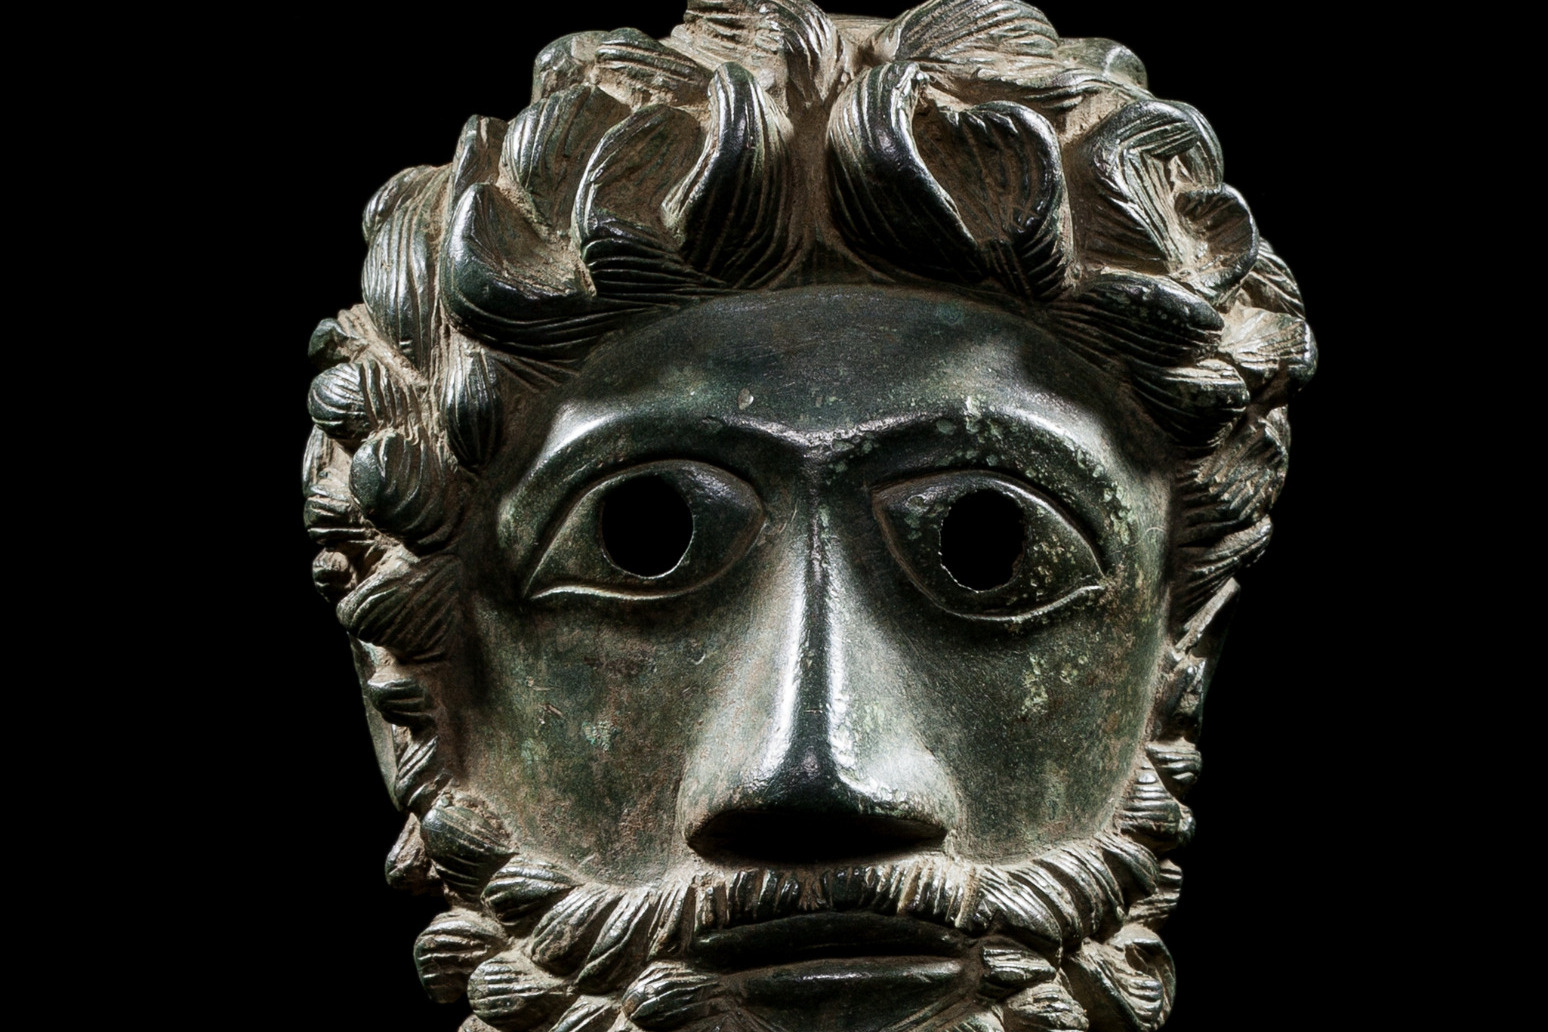 'Nationally significant' collection of Roman bronzes acquired by museum